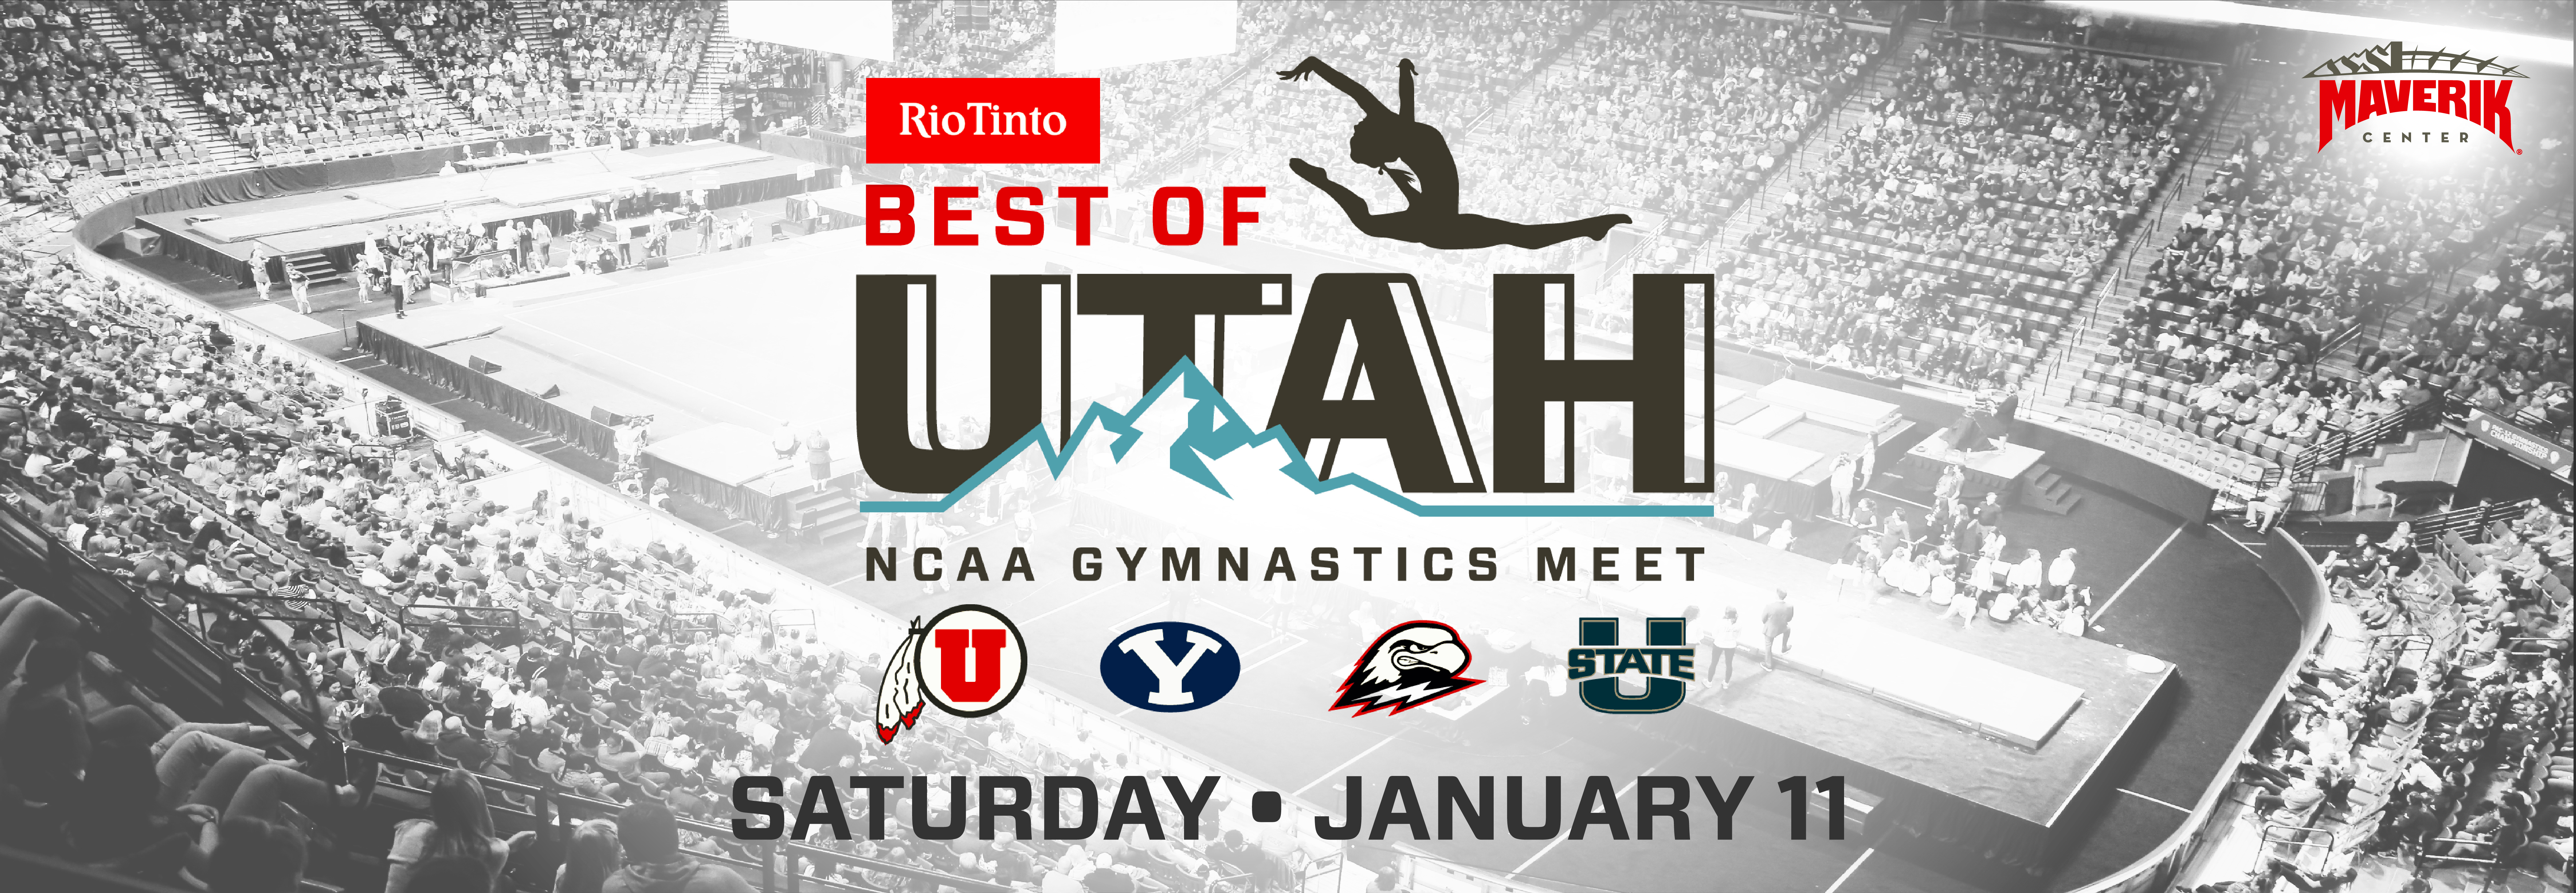 Rio Tinto Best of Utah NCAA Gymnastics Meet